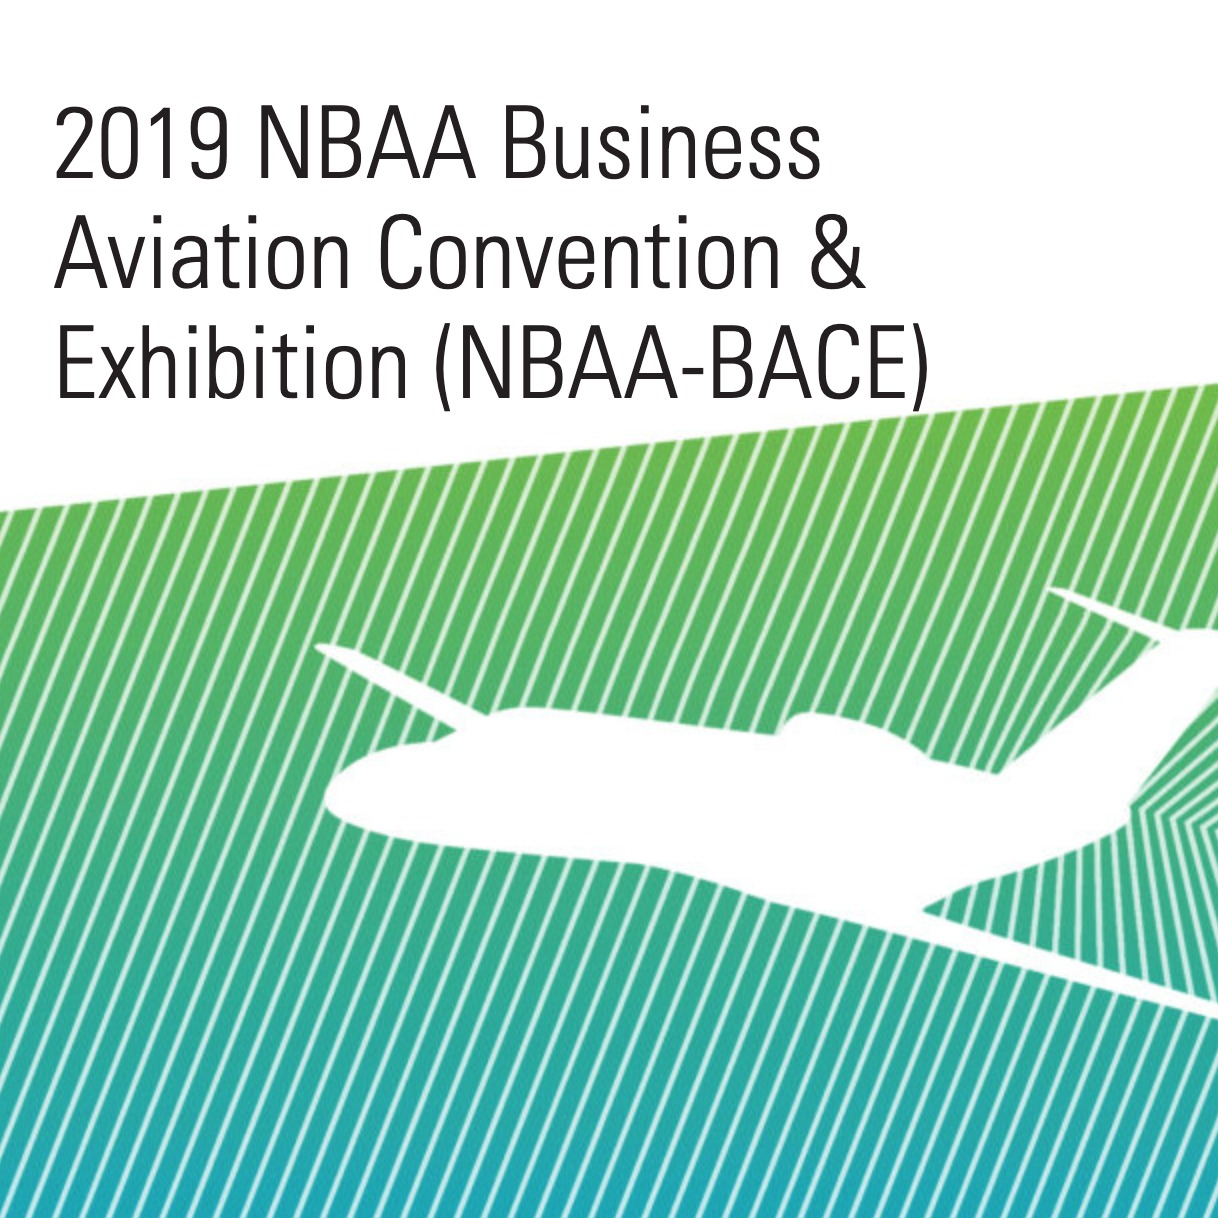 7 Reasons Your Aviation Brand Should Be at NBAA This Year